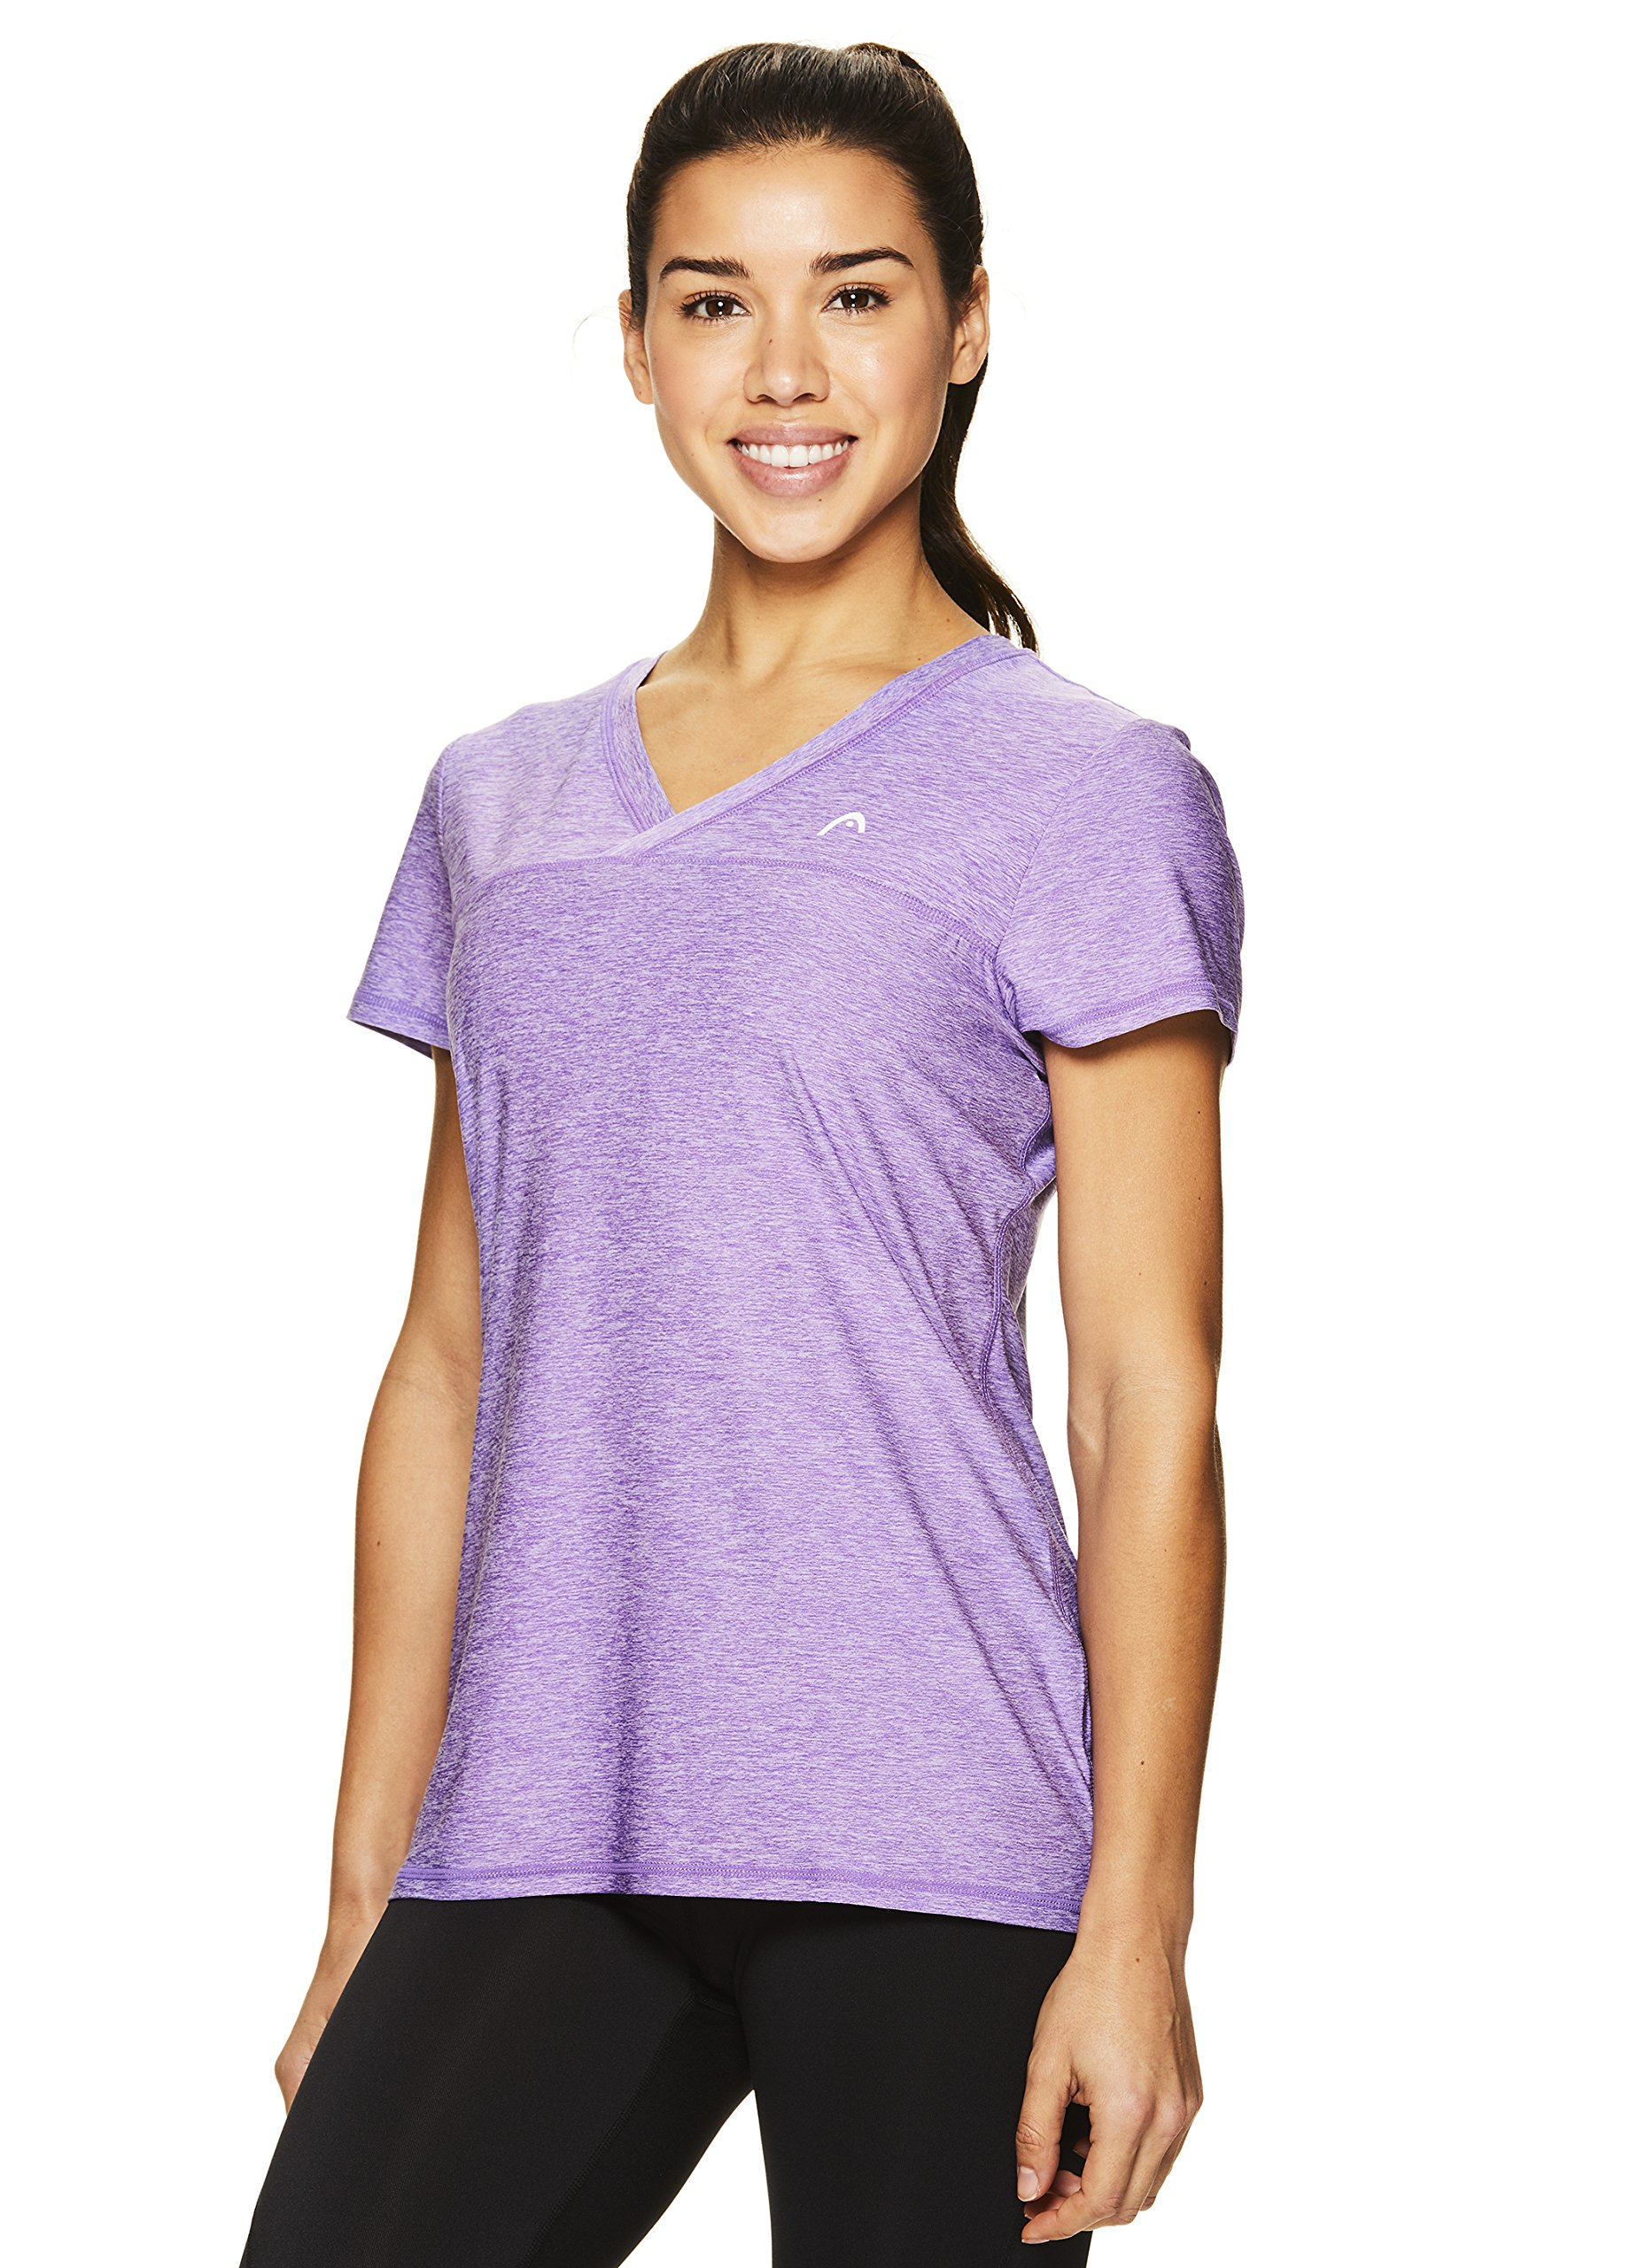 HEAD Women's High Jump Short Sleeve Workout T-Shirt - Performance V-Neck Activewear Top - Chive Blossom Heather, X-Small by HEAD (Image #2)